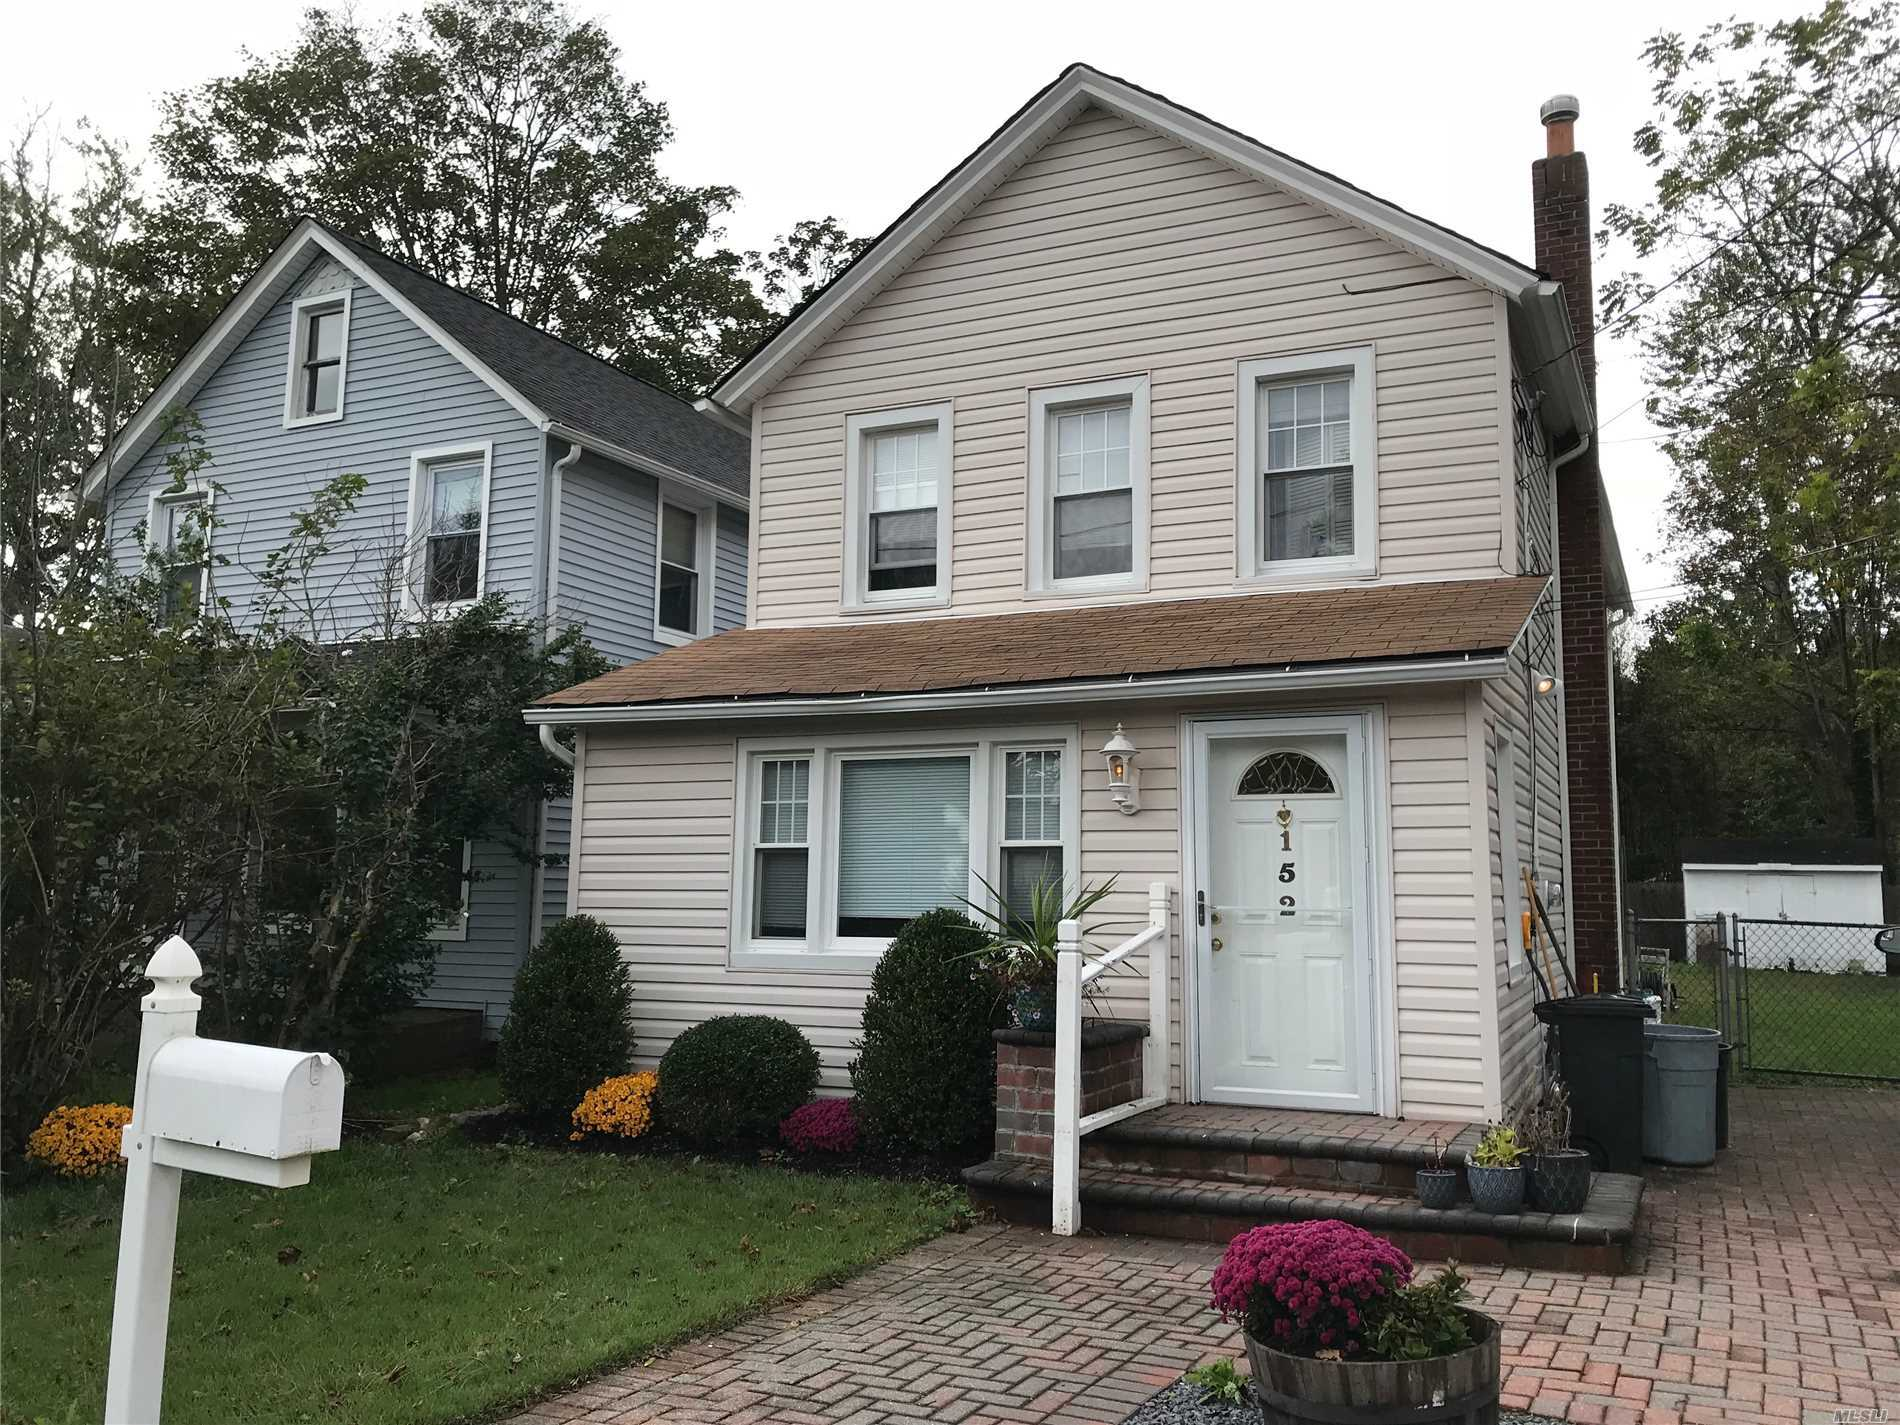 Right In The Heart Of The Village This 3 Bedroom , 1.5 Bath Colonial Has All The Charm It Needs. Enclosed Porch, Lr, Dr And Eik. See It Today And Call It Home Tomorrow.